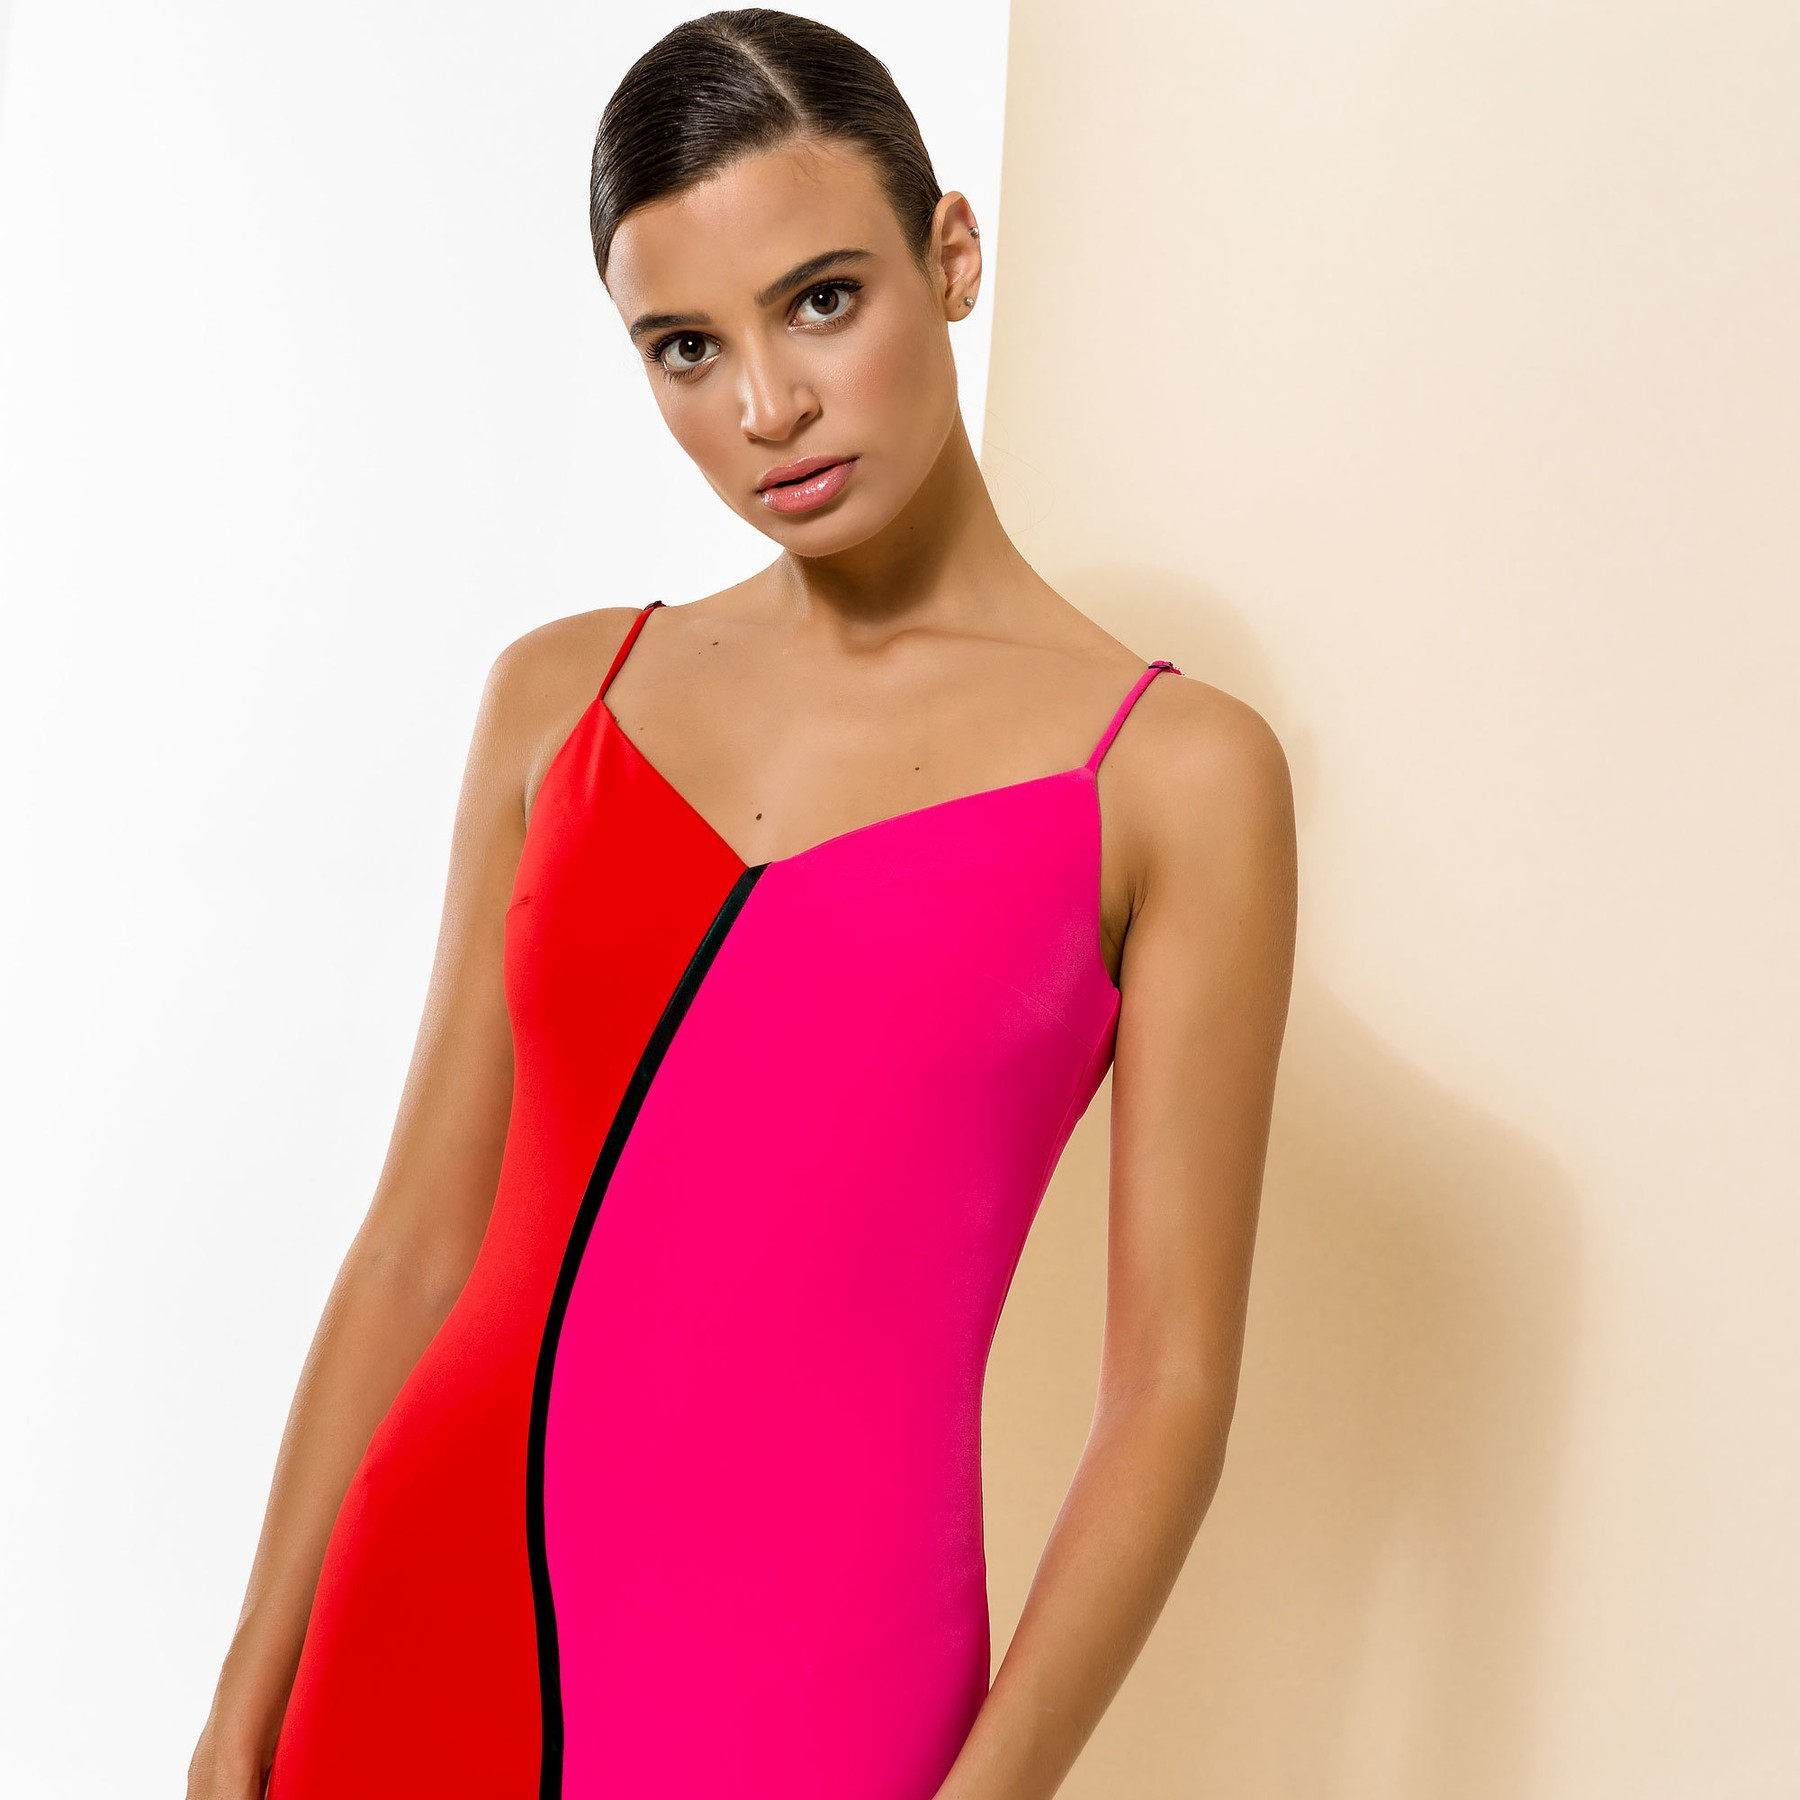 Bodycon dress in Red and Pink with Black Trim